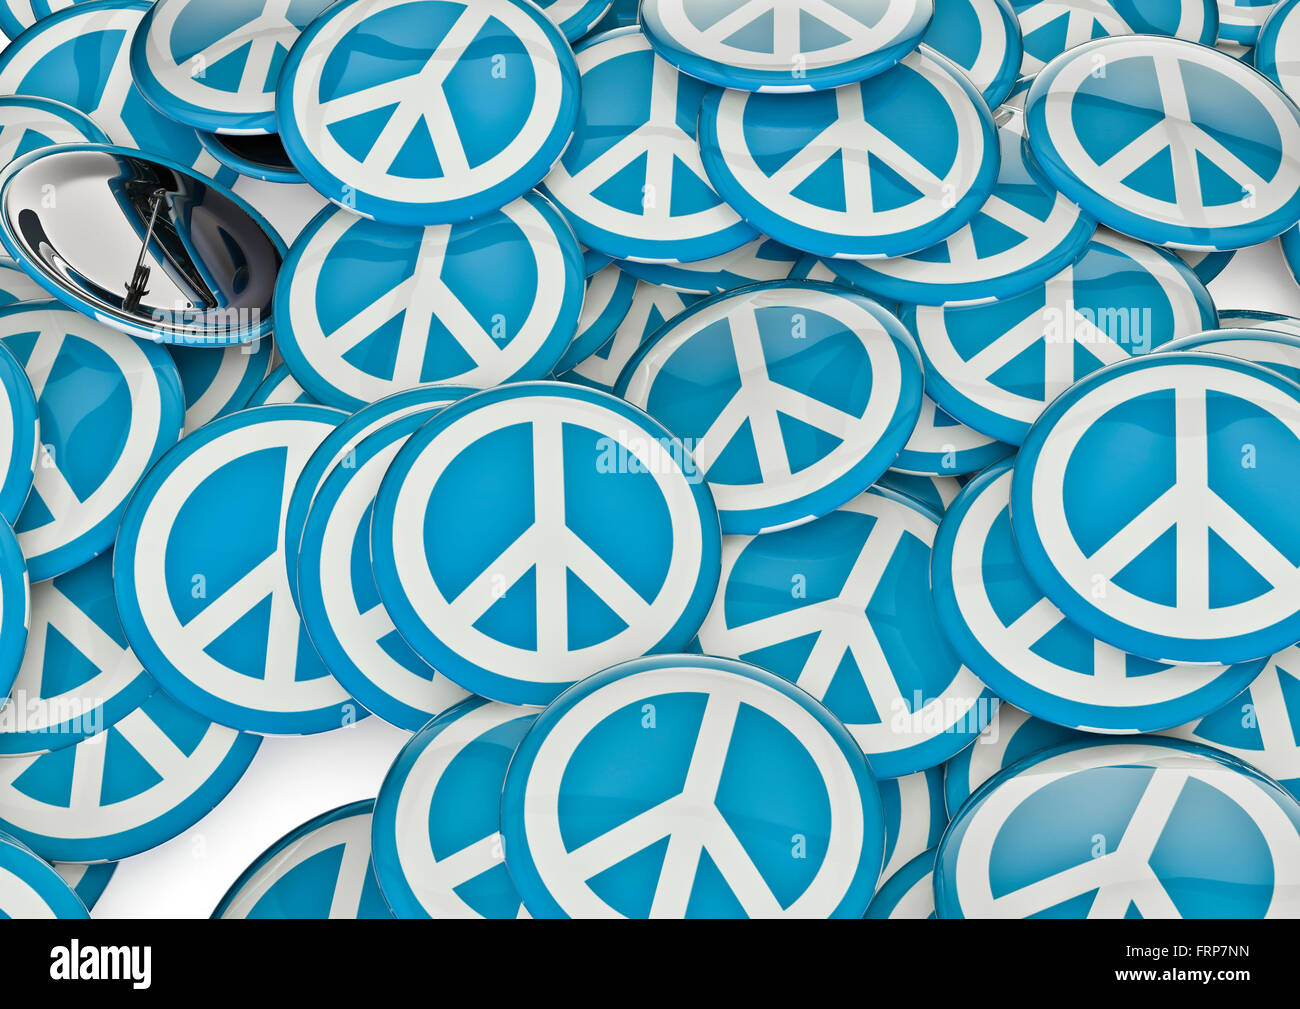 Peace badges / 3D render of metallic badges with peace symbol - Stock Image